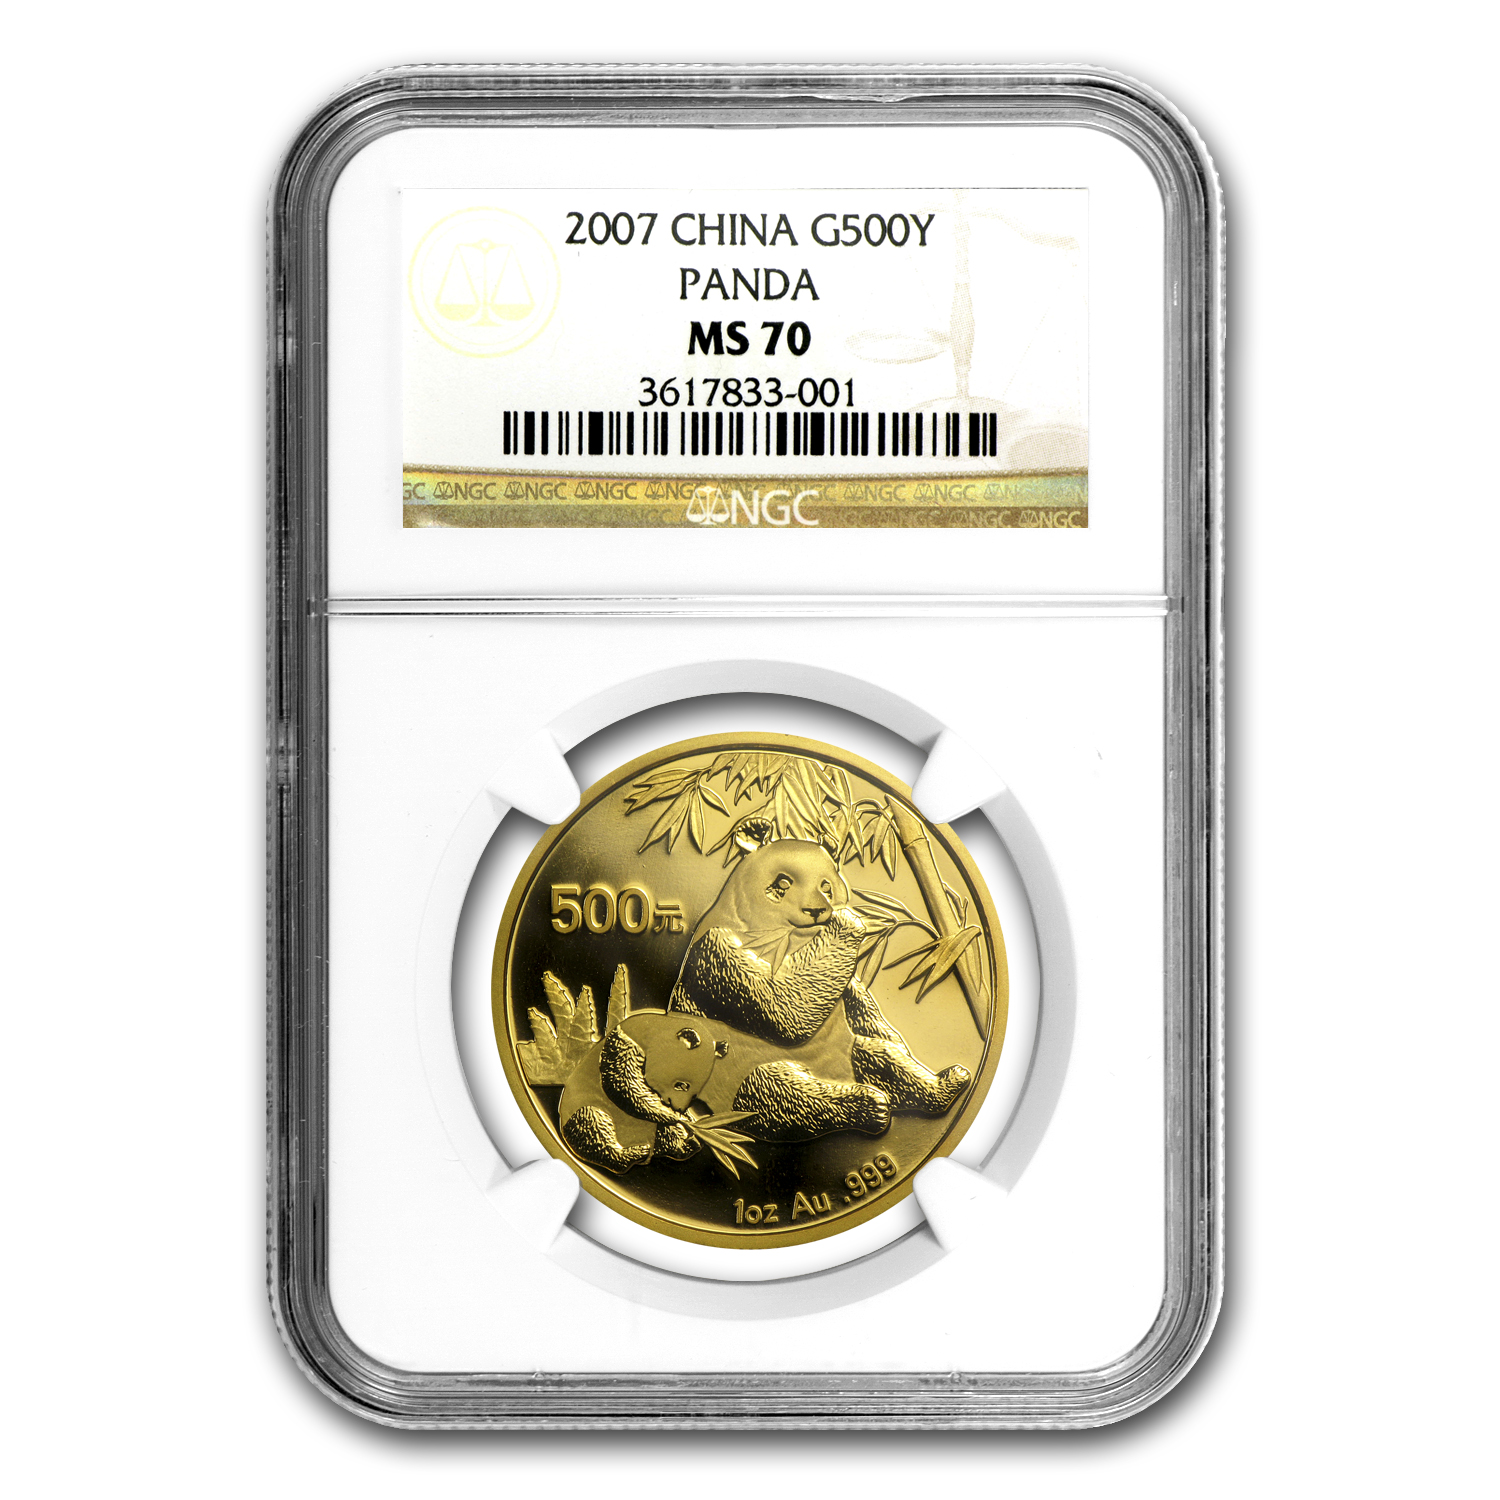 2007 China 1 oz Gold Panda MS-70 NGC